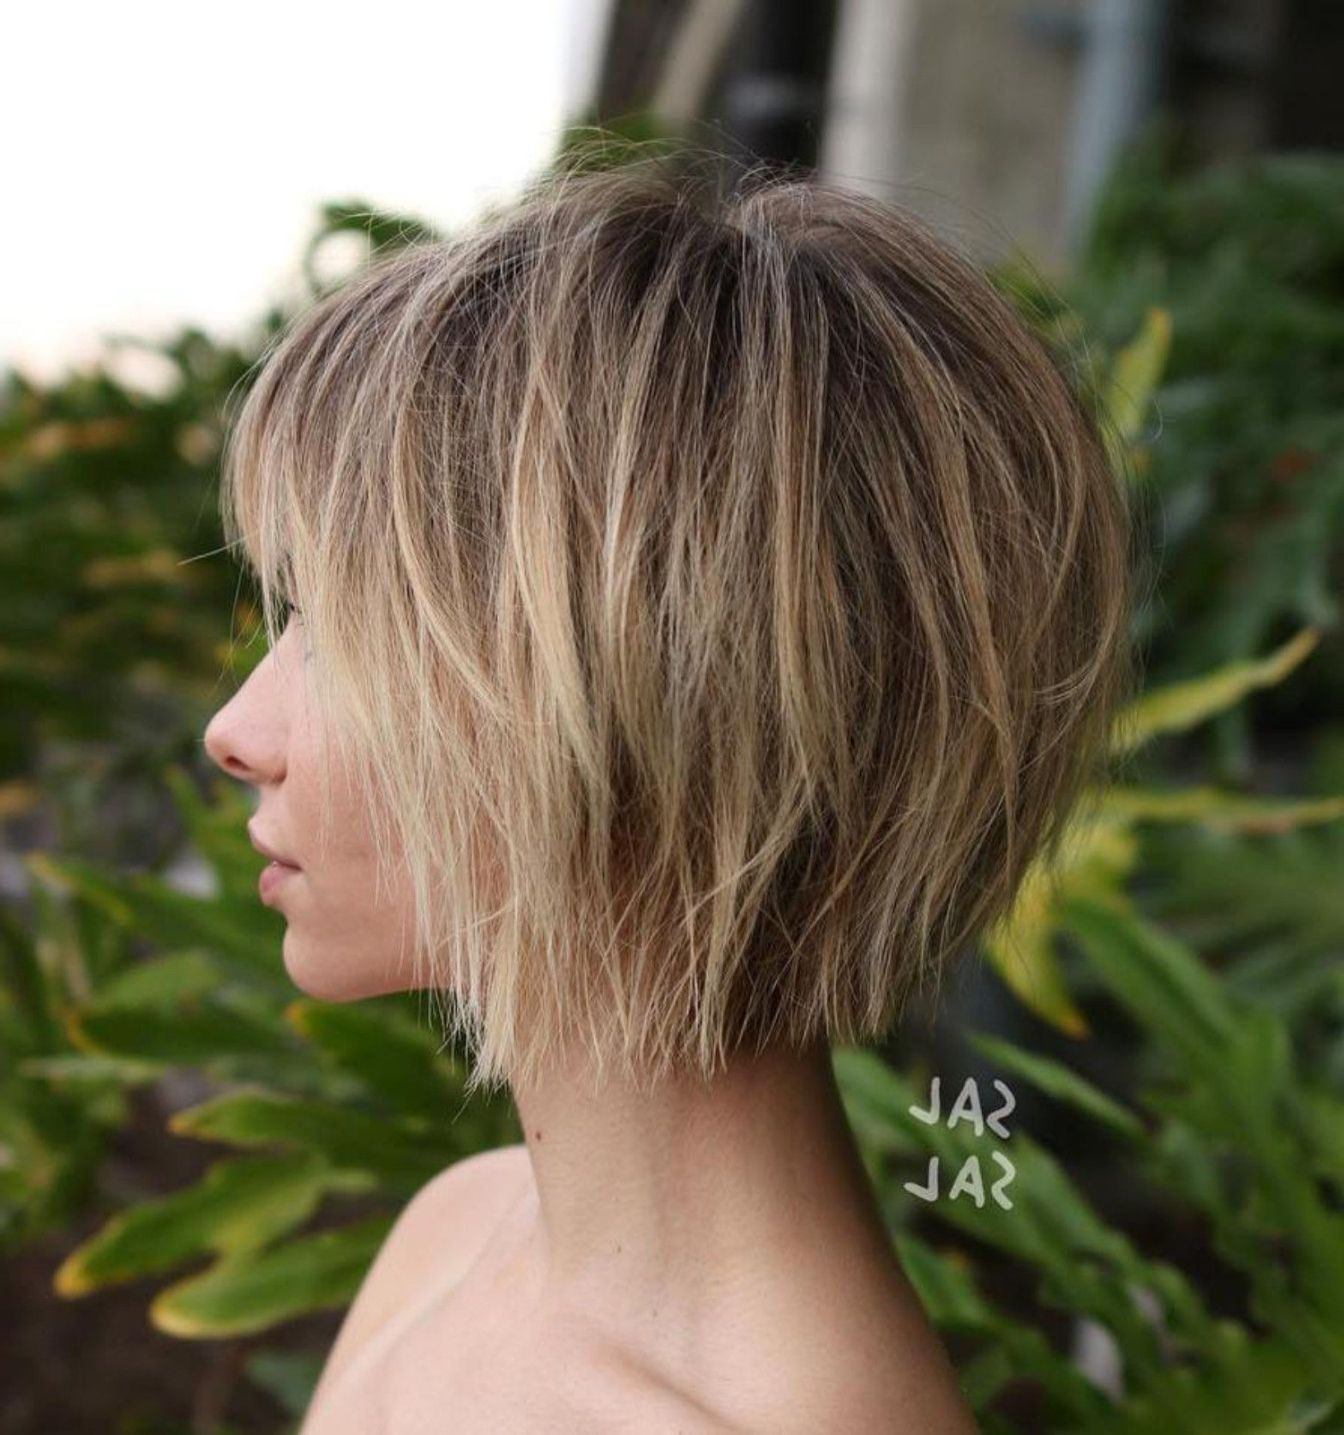 Favorite Shaggy Bob Hairstyles With Choppy Layers Intended For Pin On Hairstyles (View 8 of 20)